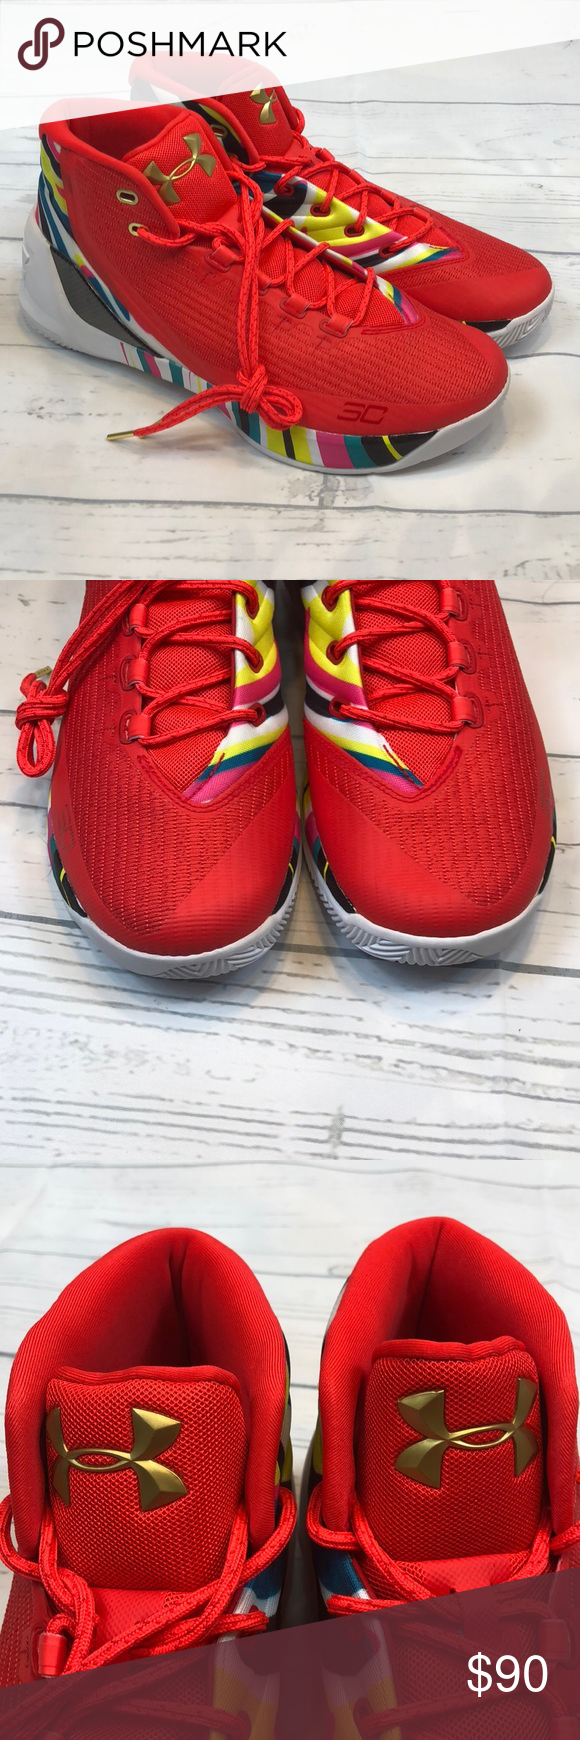 2fd95503099f Under Armour Steph Curry 3 11.5 Chinese New Year NEW Mens Under Armour UA  Steph Curry 3 SZ 11.5 Chinese New Year CNY 1269279-984 No box Under Armour  Shoes ...